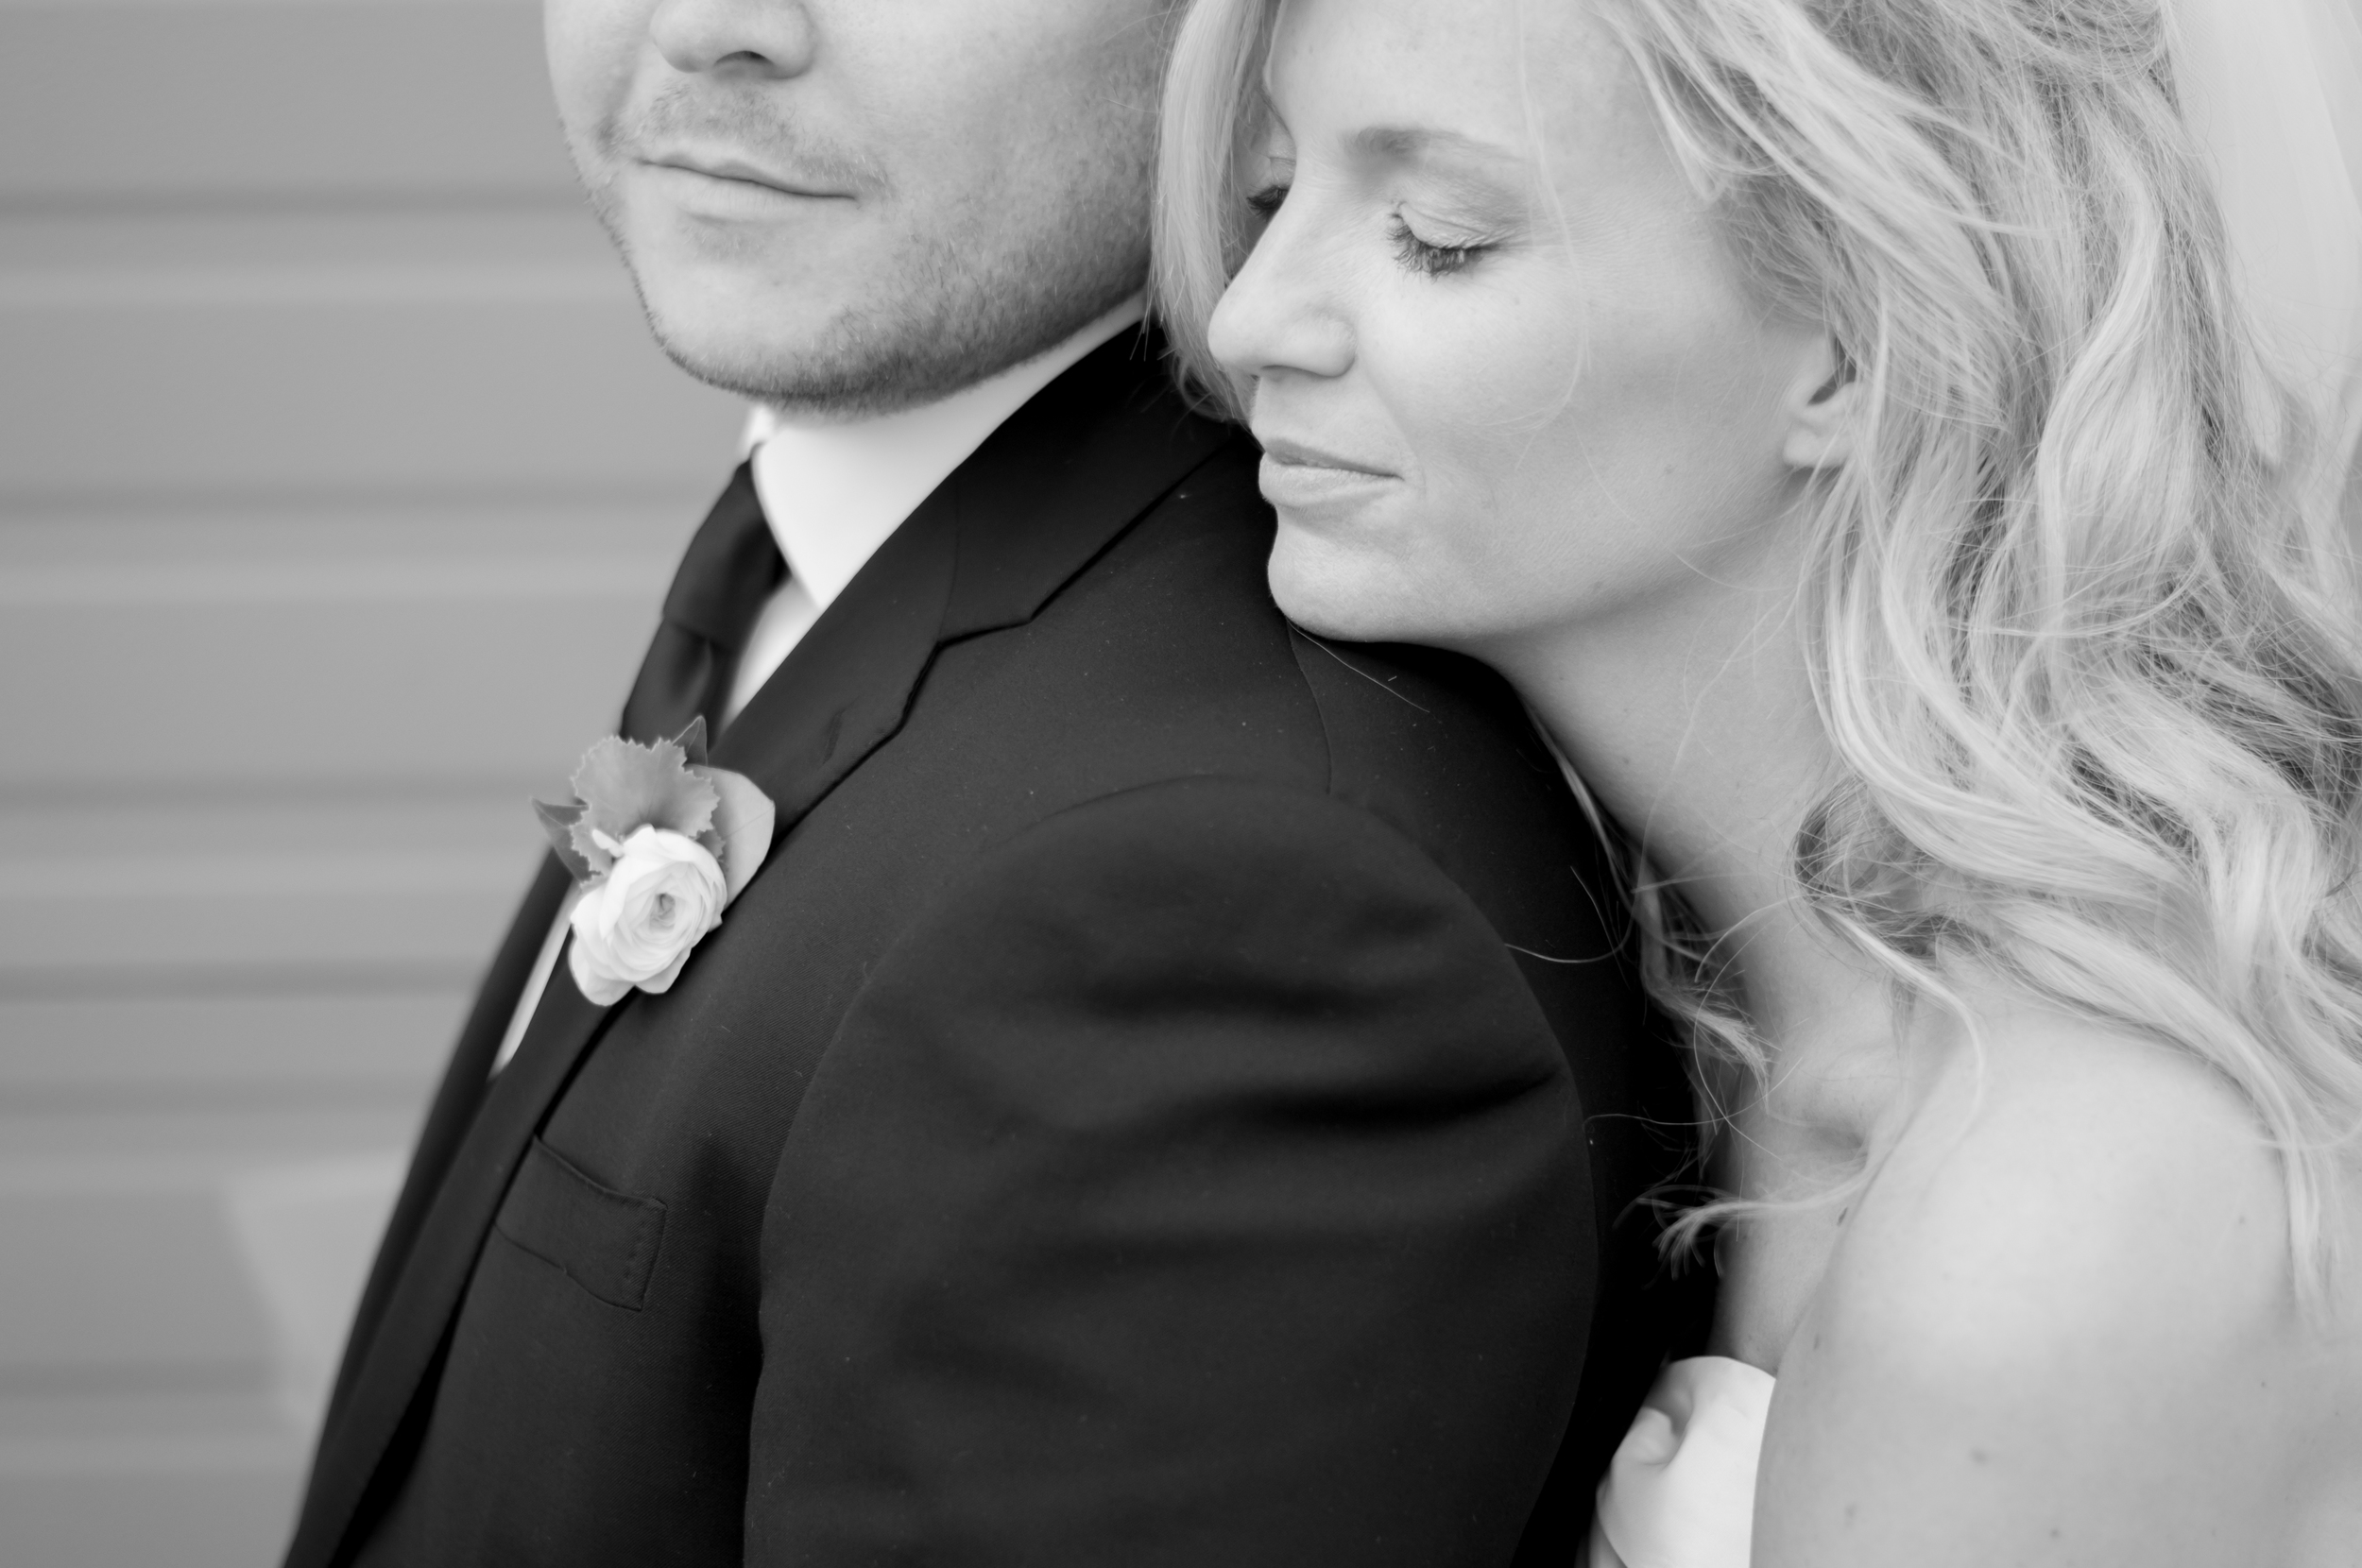 meredith donnelly photography-86.jpg